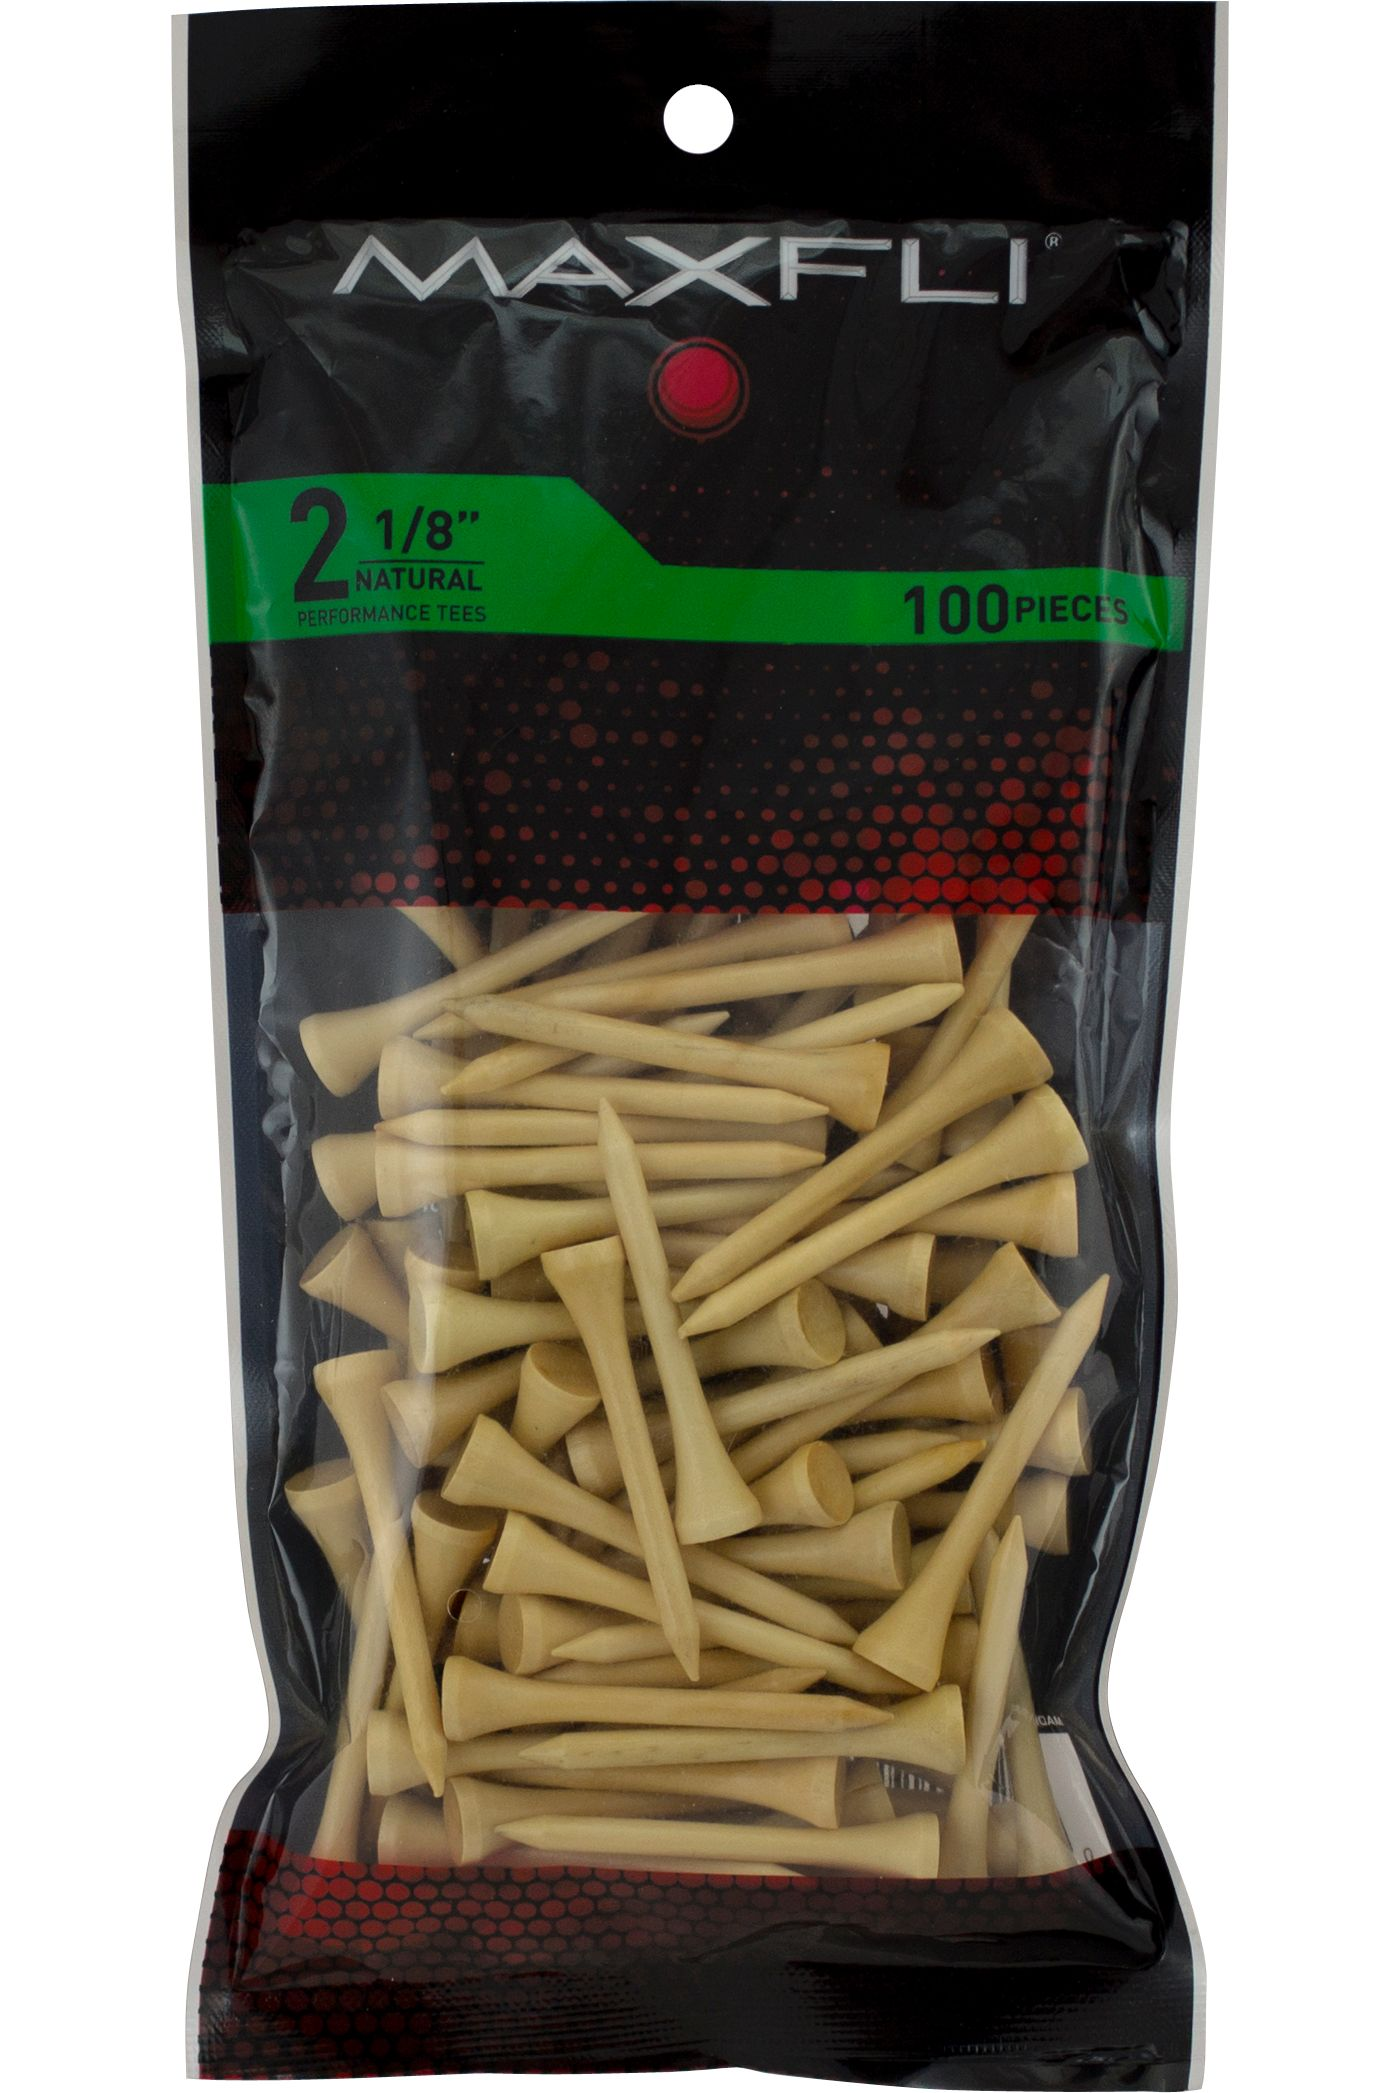 Maxfli 2 1/8'' Natural Golf Tees - 100 Pack